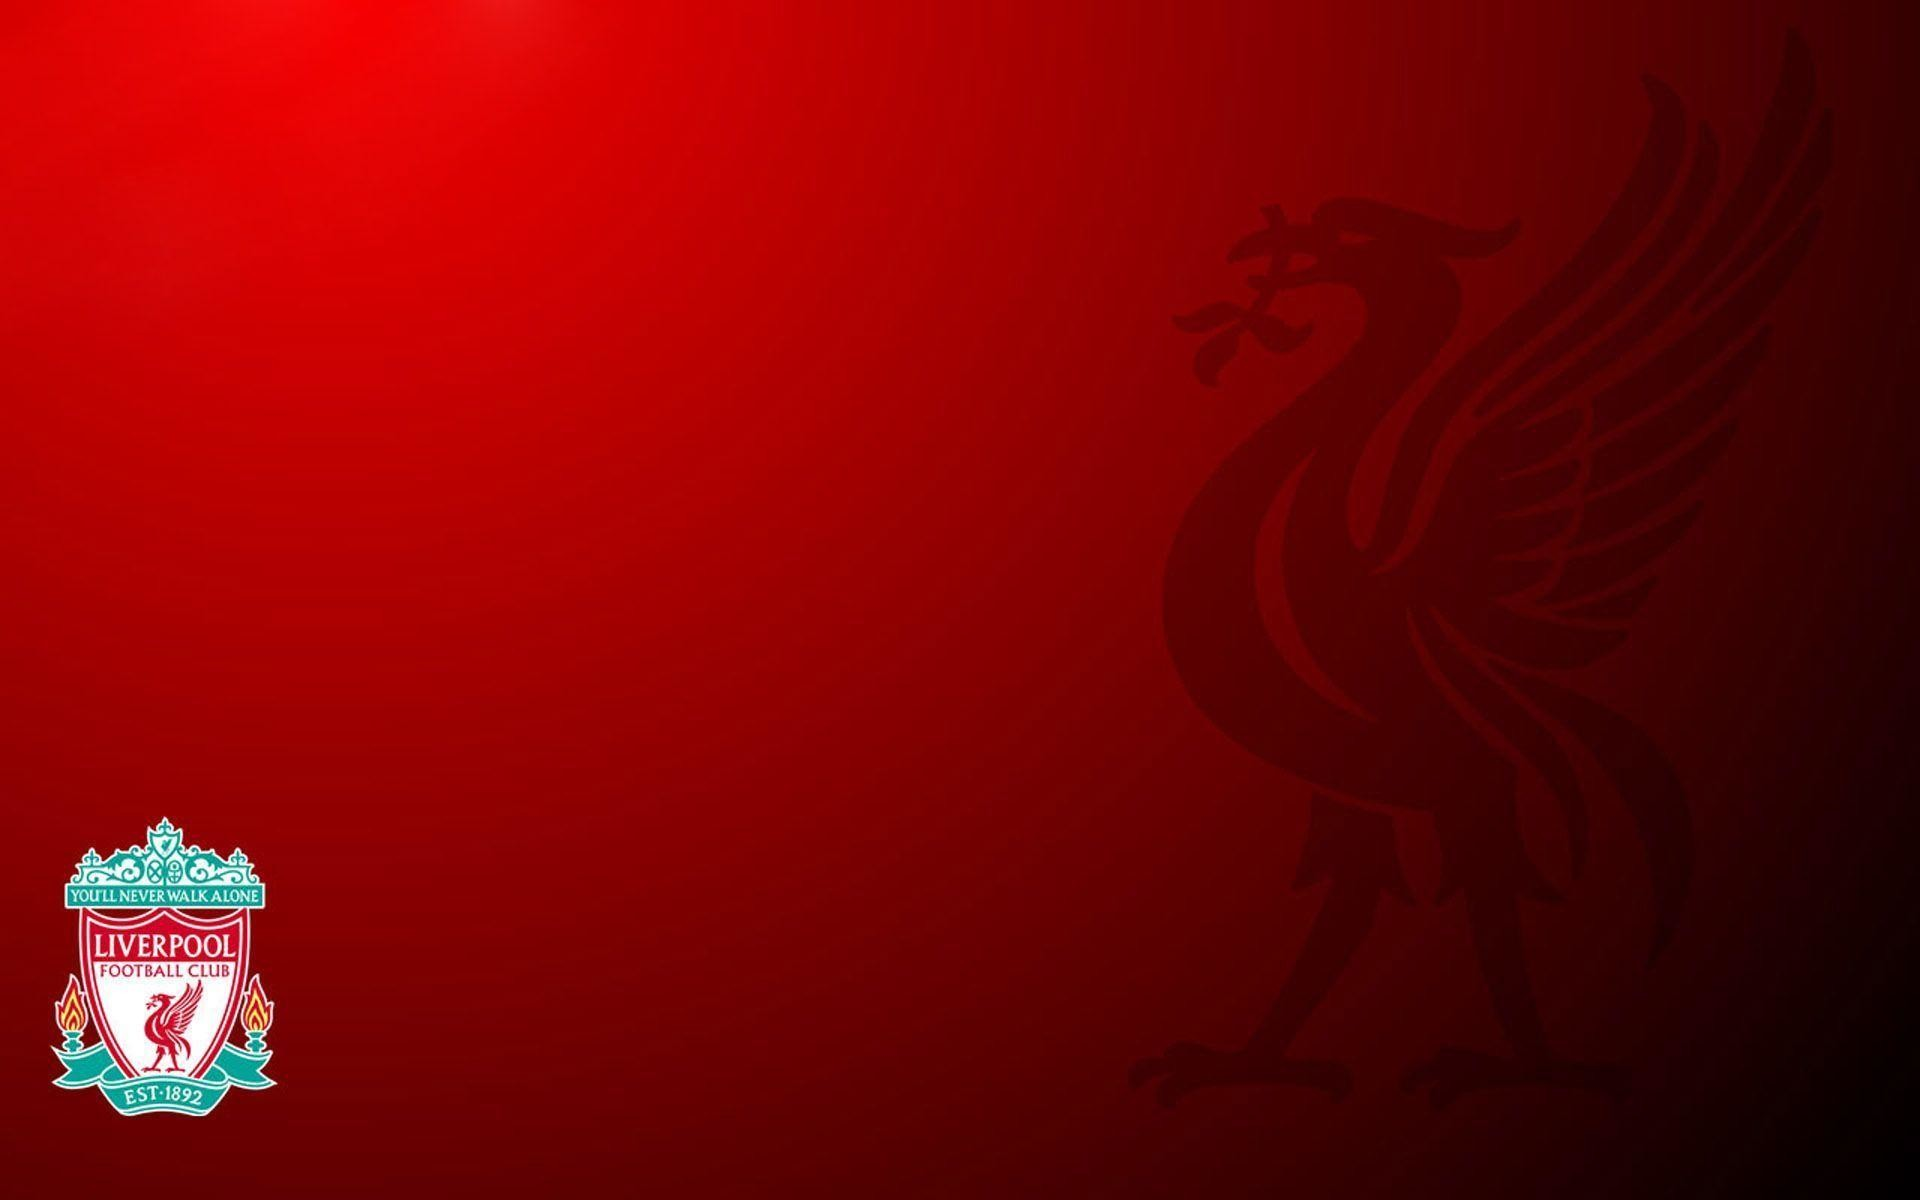 Liverpool Wallpaper 4 Liverpool Fc Wallpaper Hd Free Liverpool Wallpaper Pc 1920x1200 Download Hd Wallpaper Wallpapertip